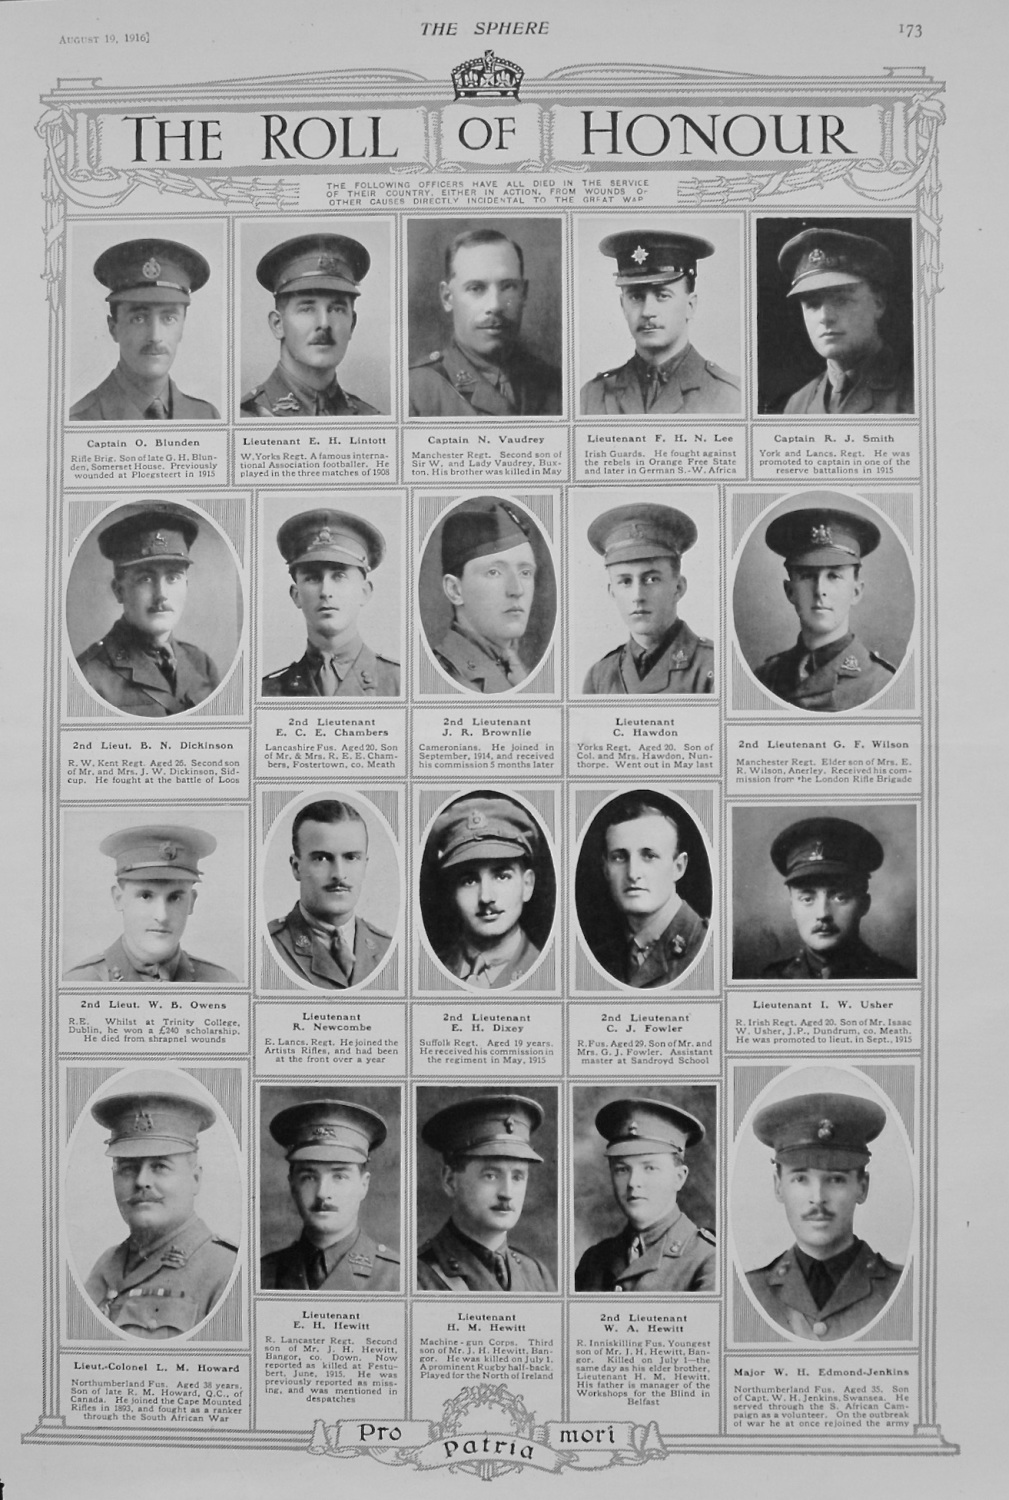 The Roll of Honour. August 19th, 1916.